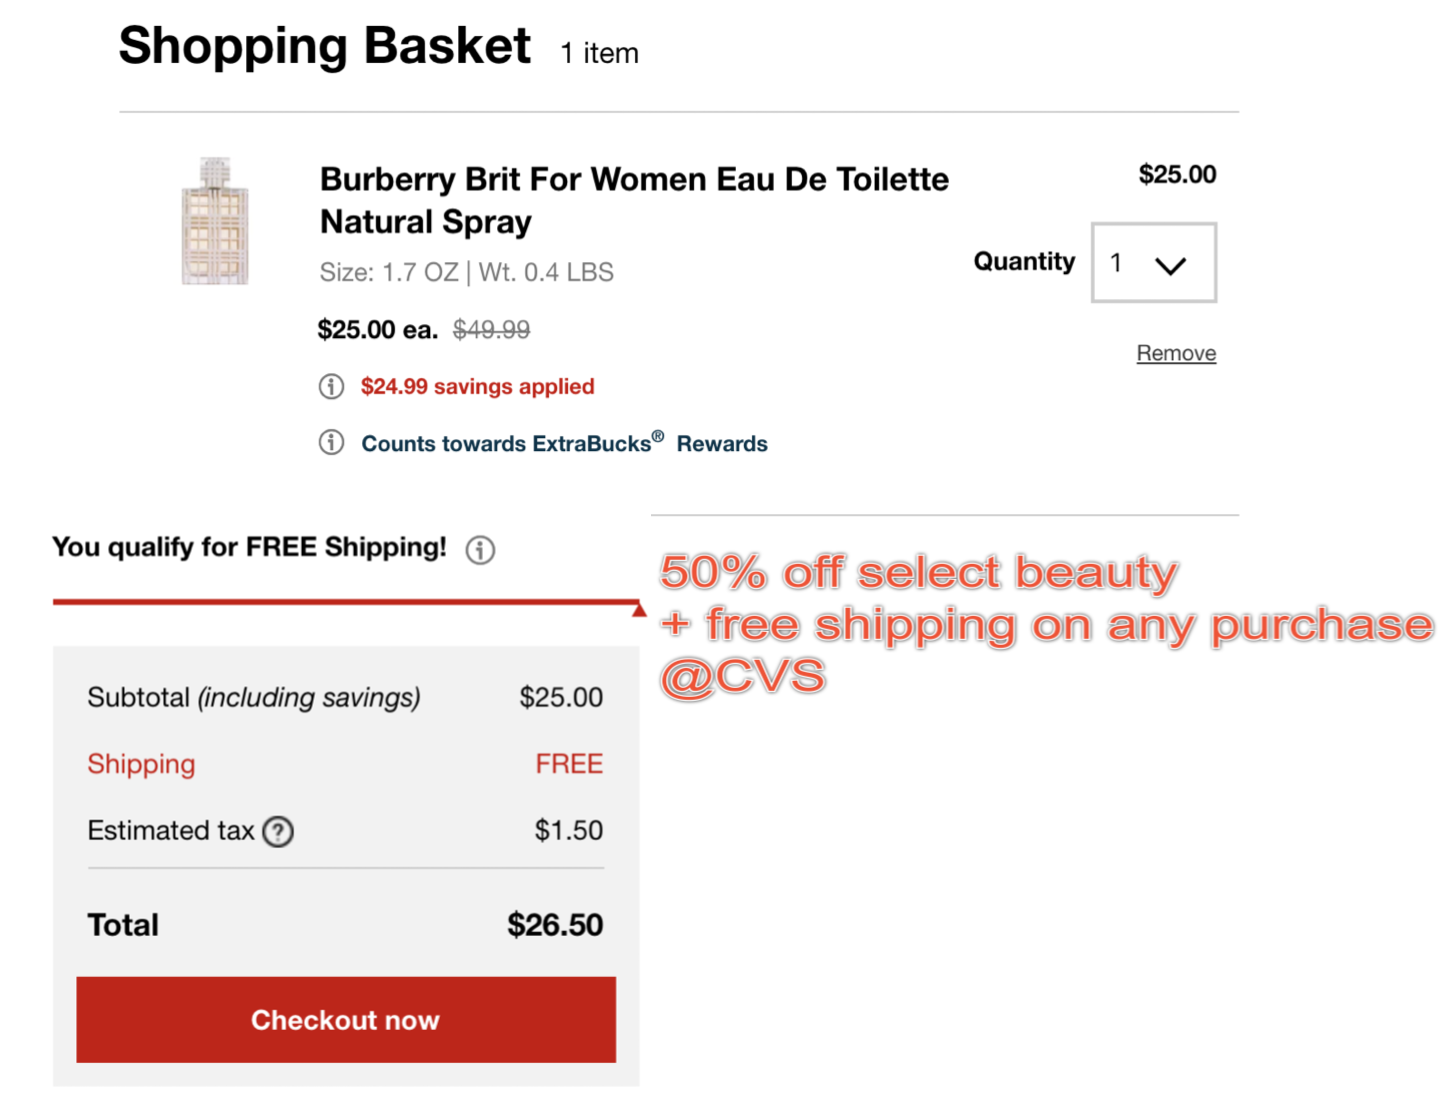 Cvs 50 Off Select Beauty Free Shipping On Any Purchase Free